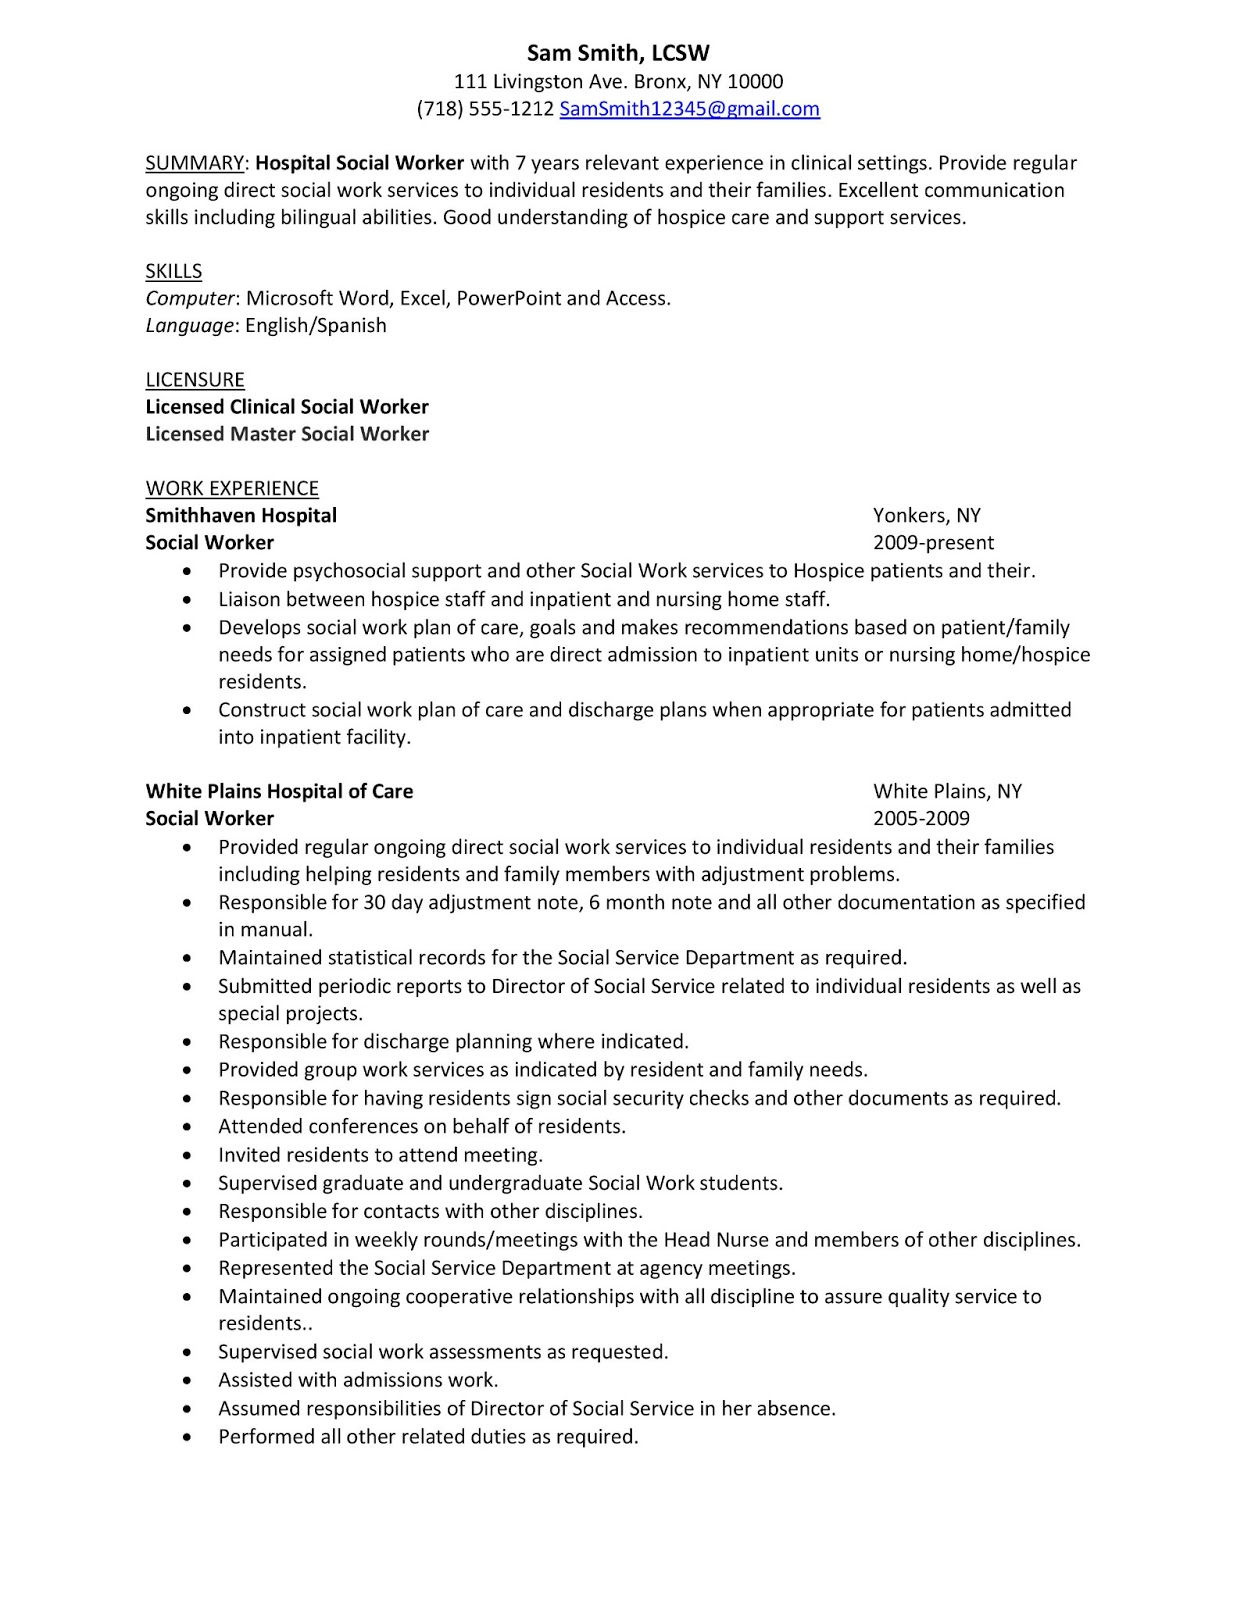 environmental science internship cover letter job resume sustainability cover letter sample iema environmental skills map livecareer - Social Work Resumes And Cover Letters